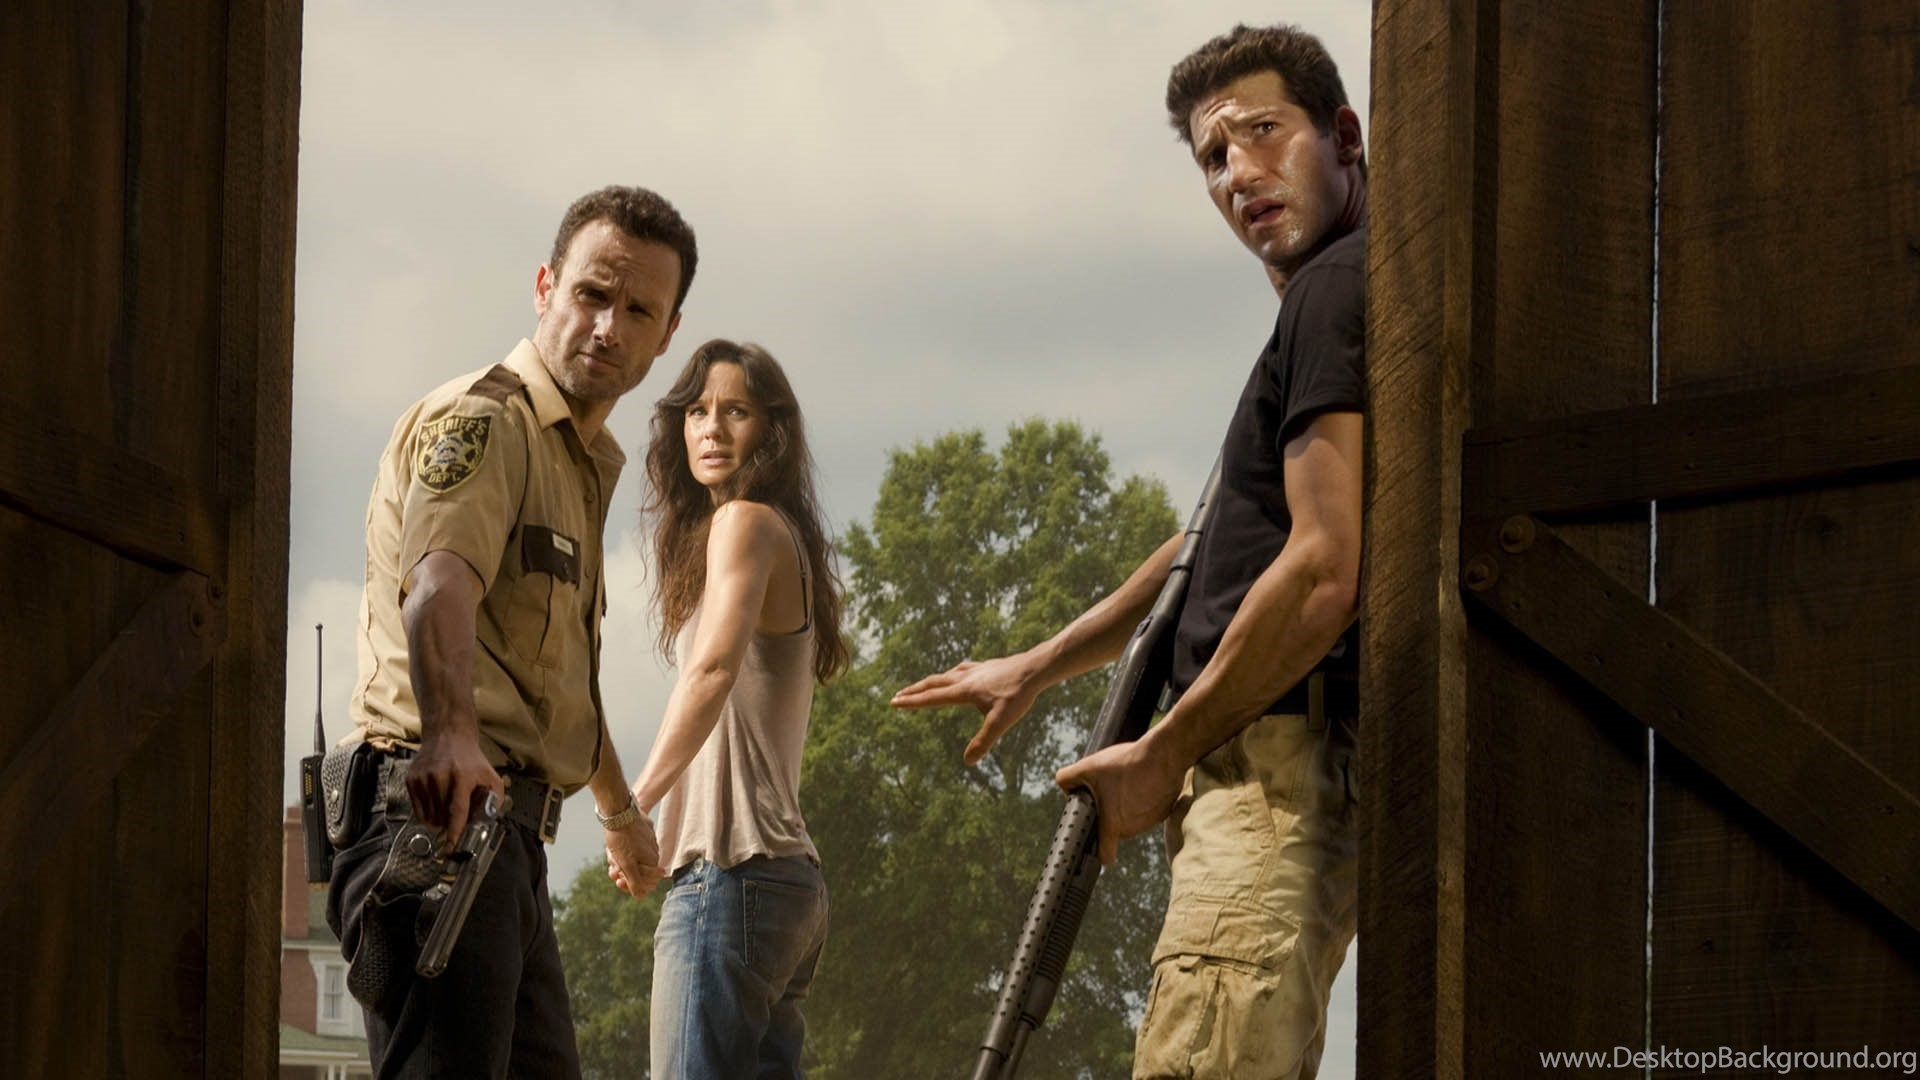 The Walking Dead Wallpapers 1920x1080 Wallpapers 1920x1080